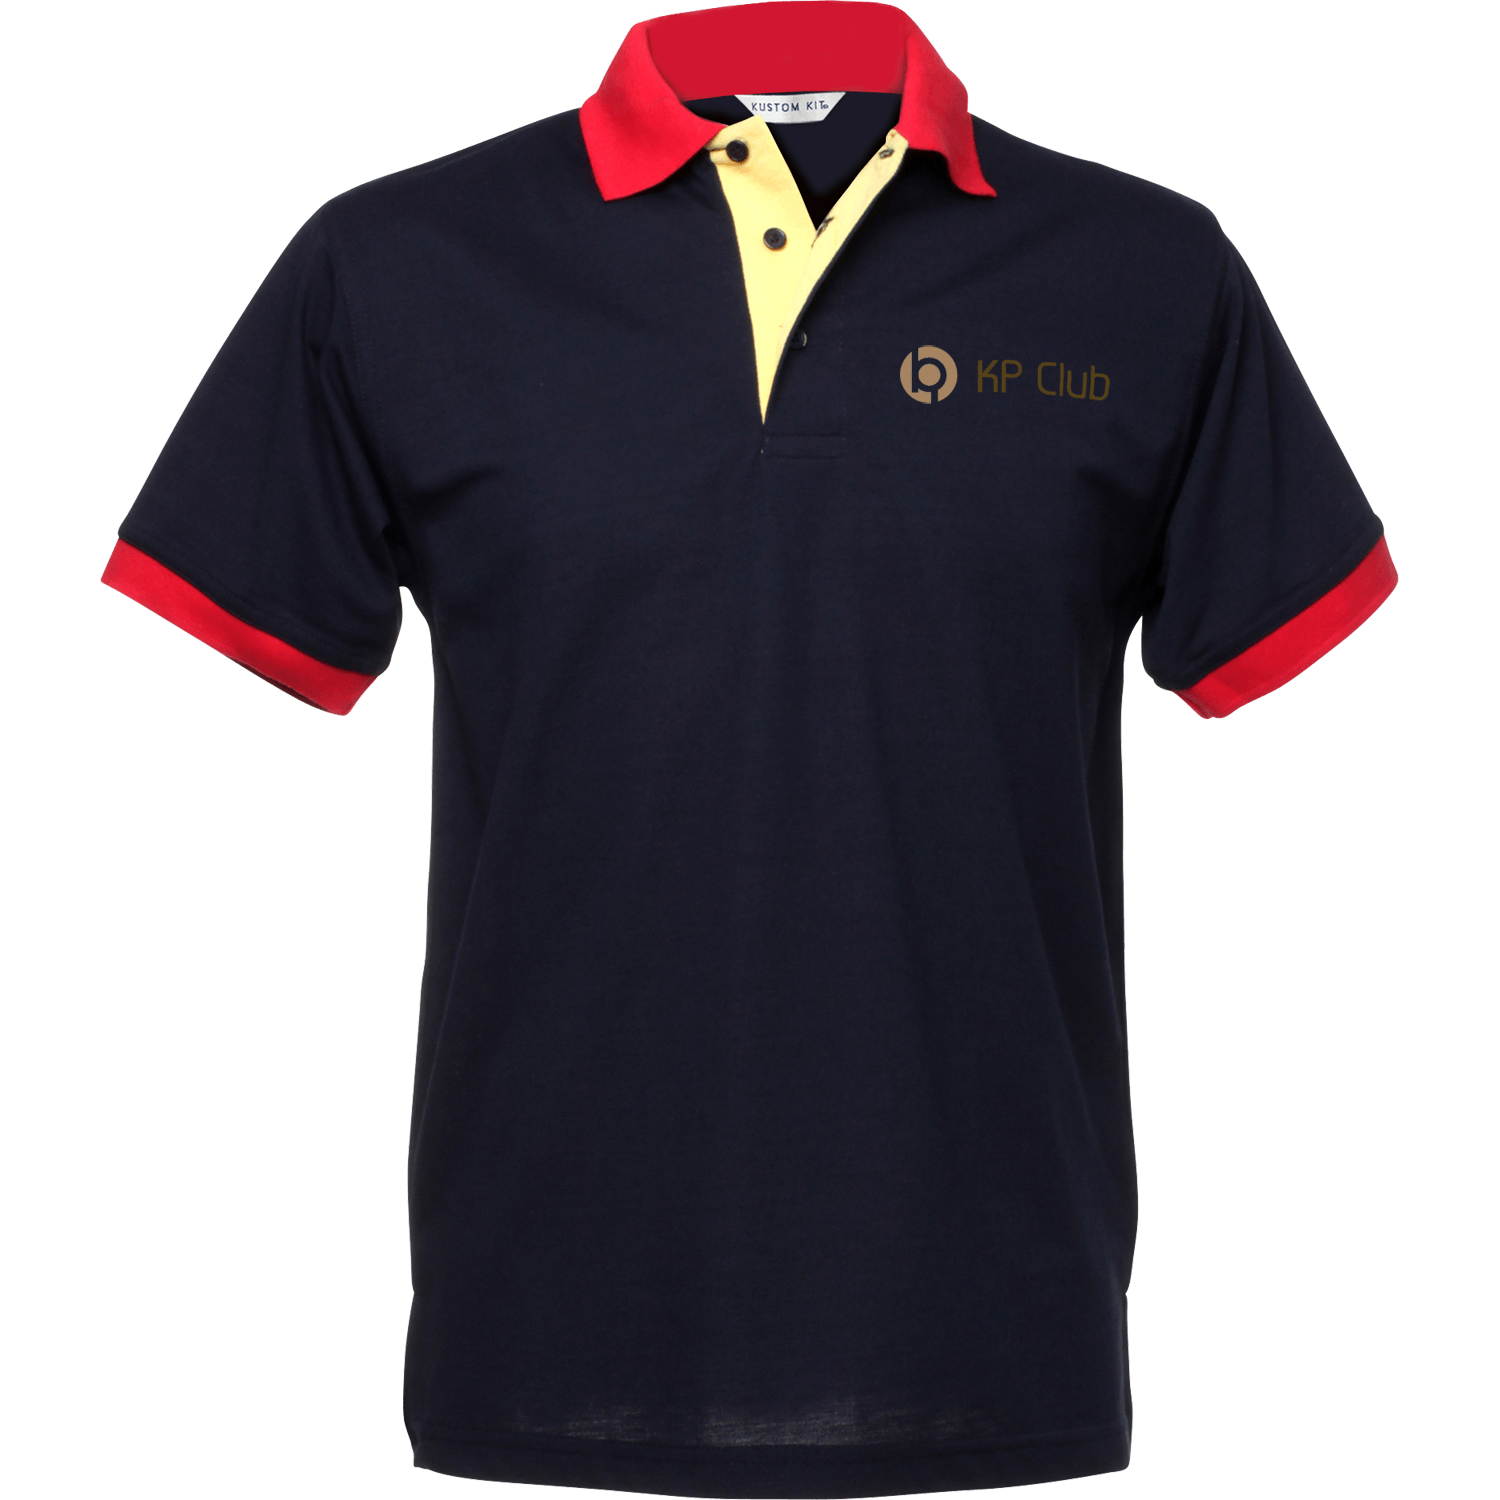 Navy - Yellow - Red